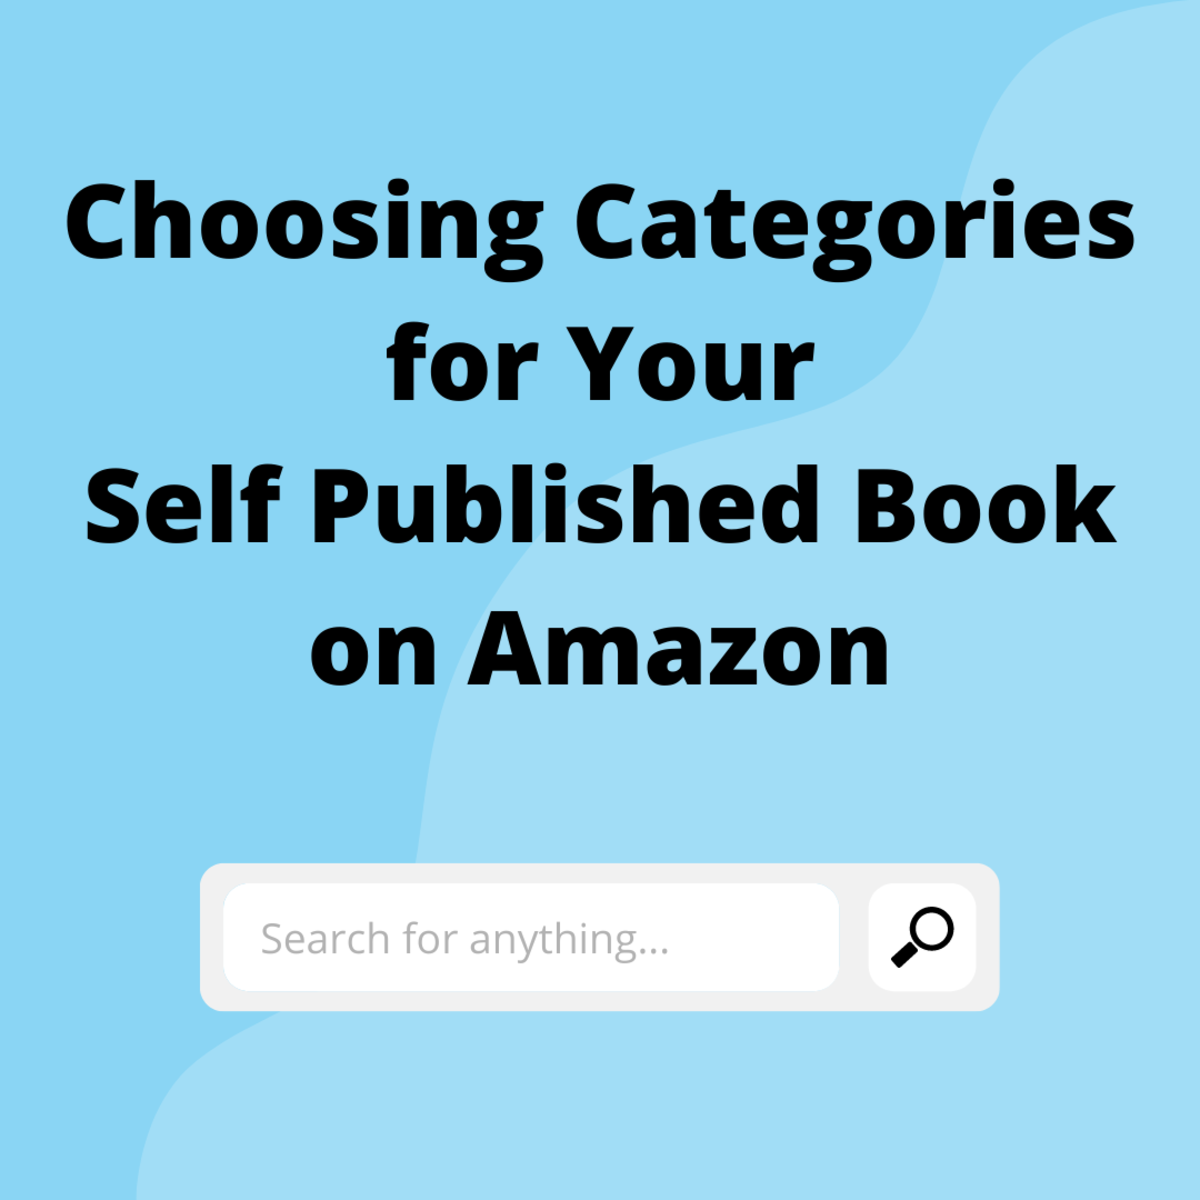 Choosing Categories for Your Self Published Book on Amazon